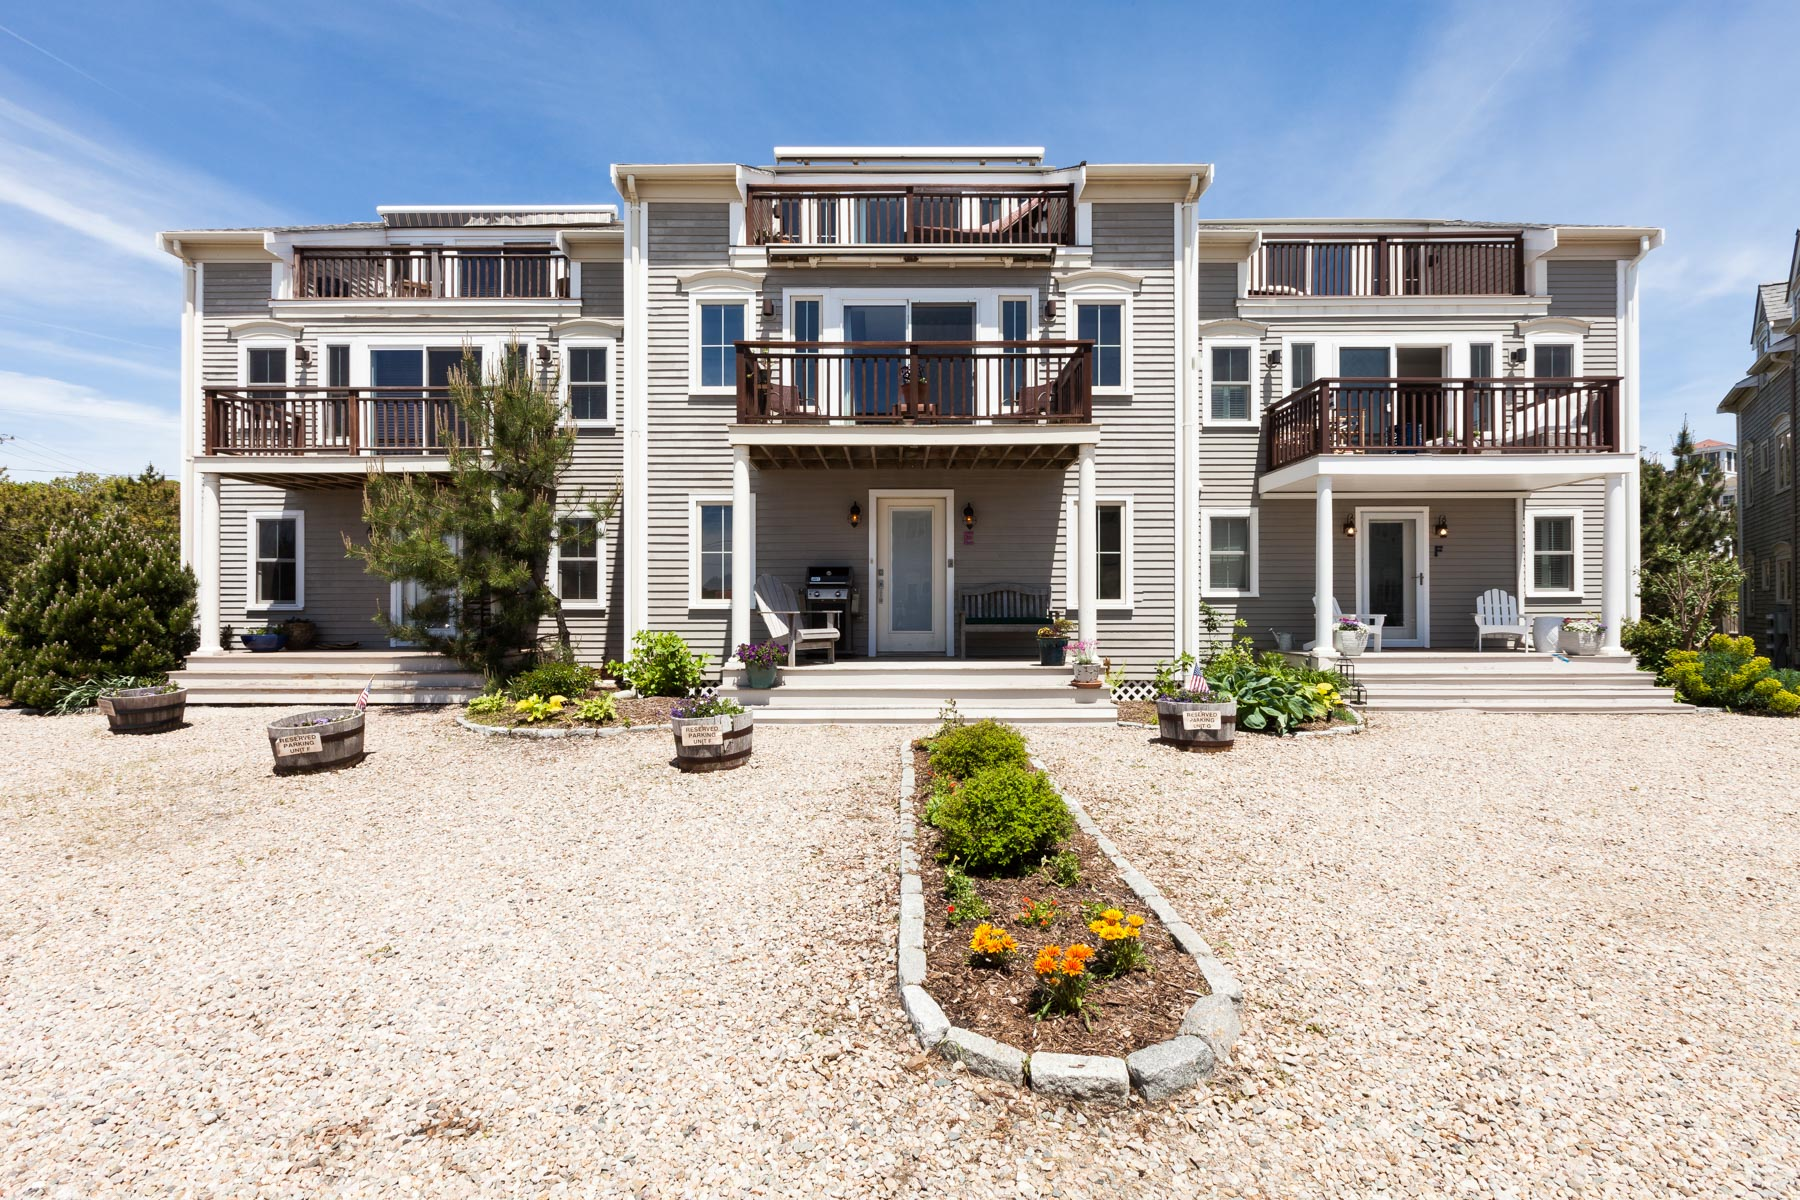 Condominium for Sale at West End Condominium with waterviews 15 Bradford Street Extension, Unit E Provincetown, Massachusetts 02657 United States